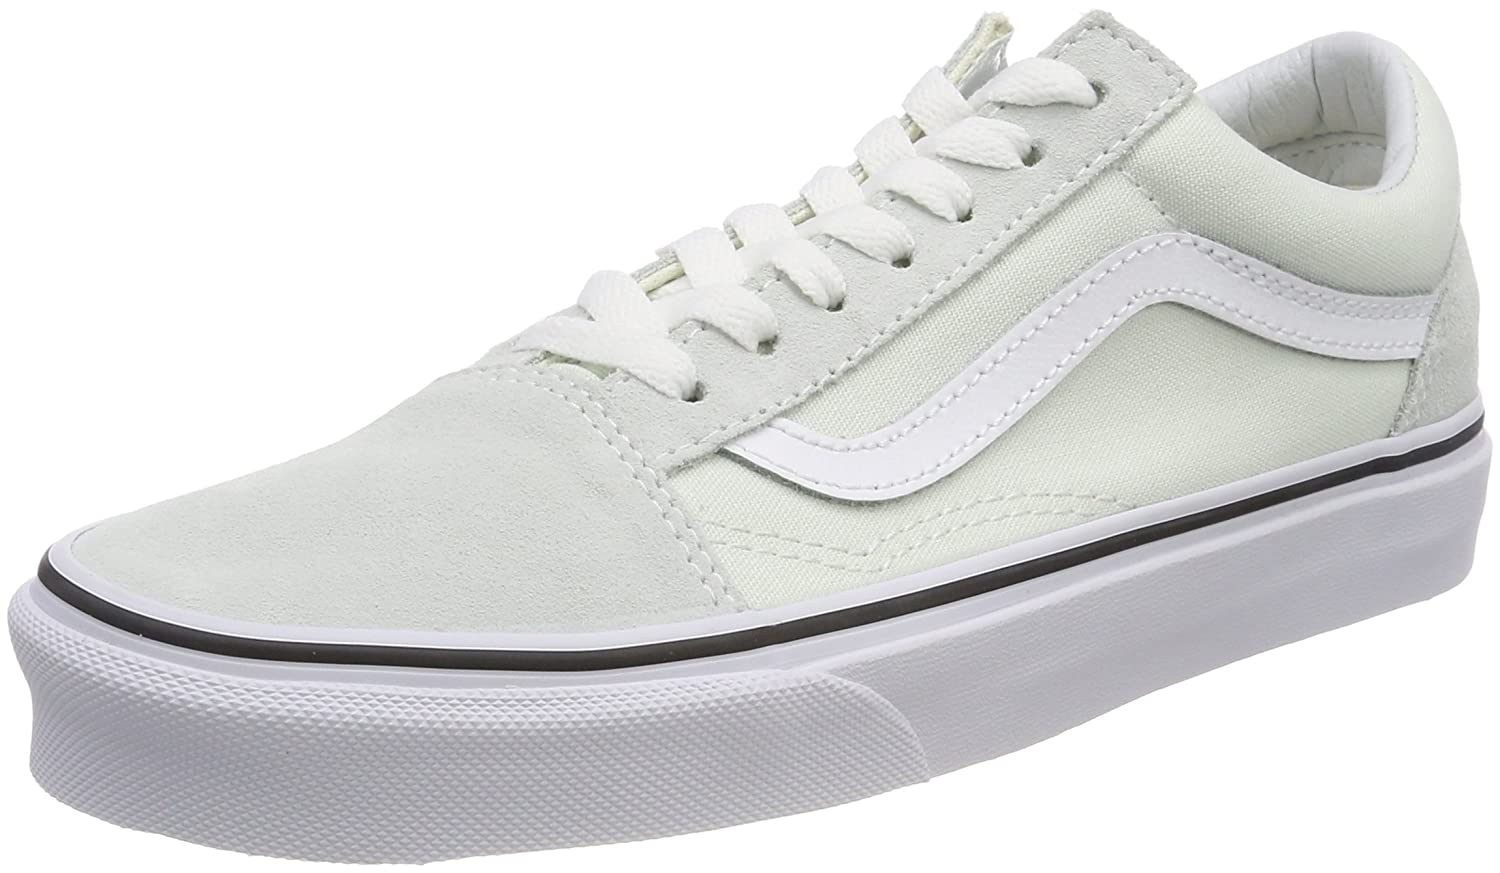 7c39e8e8f4bcab Vans Women s Old Skool Trainers  Amazon.co.uk  Shoes   Bags